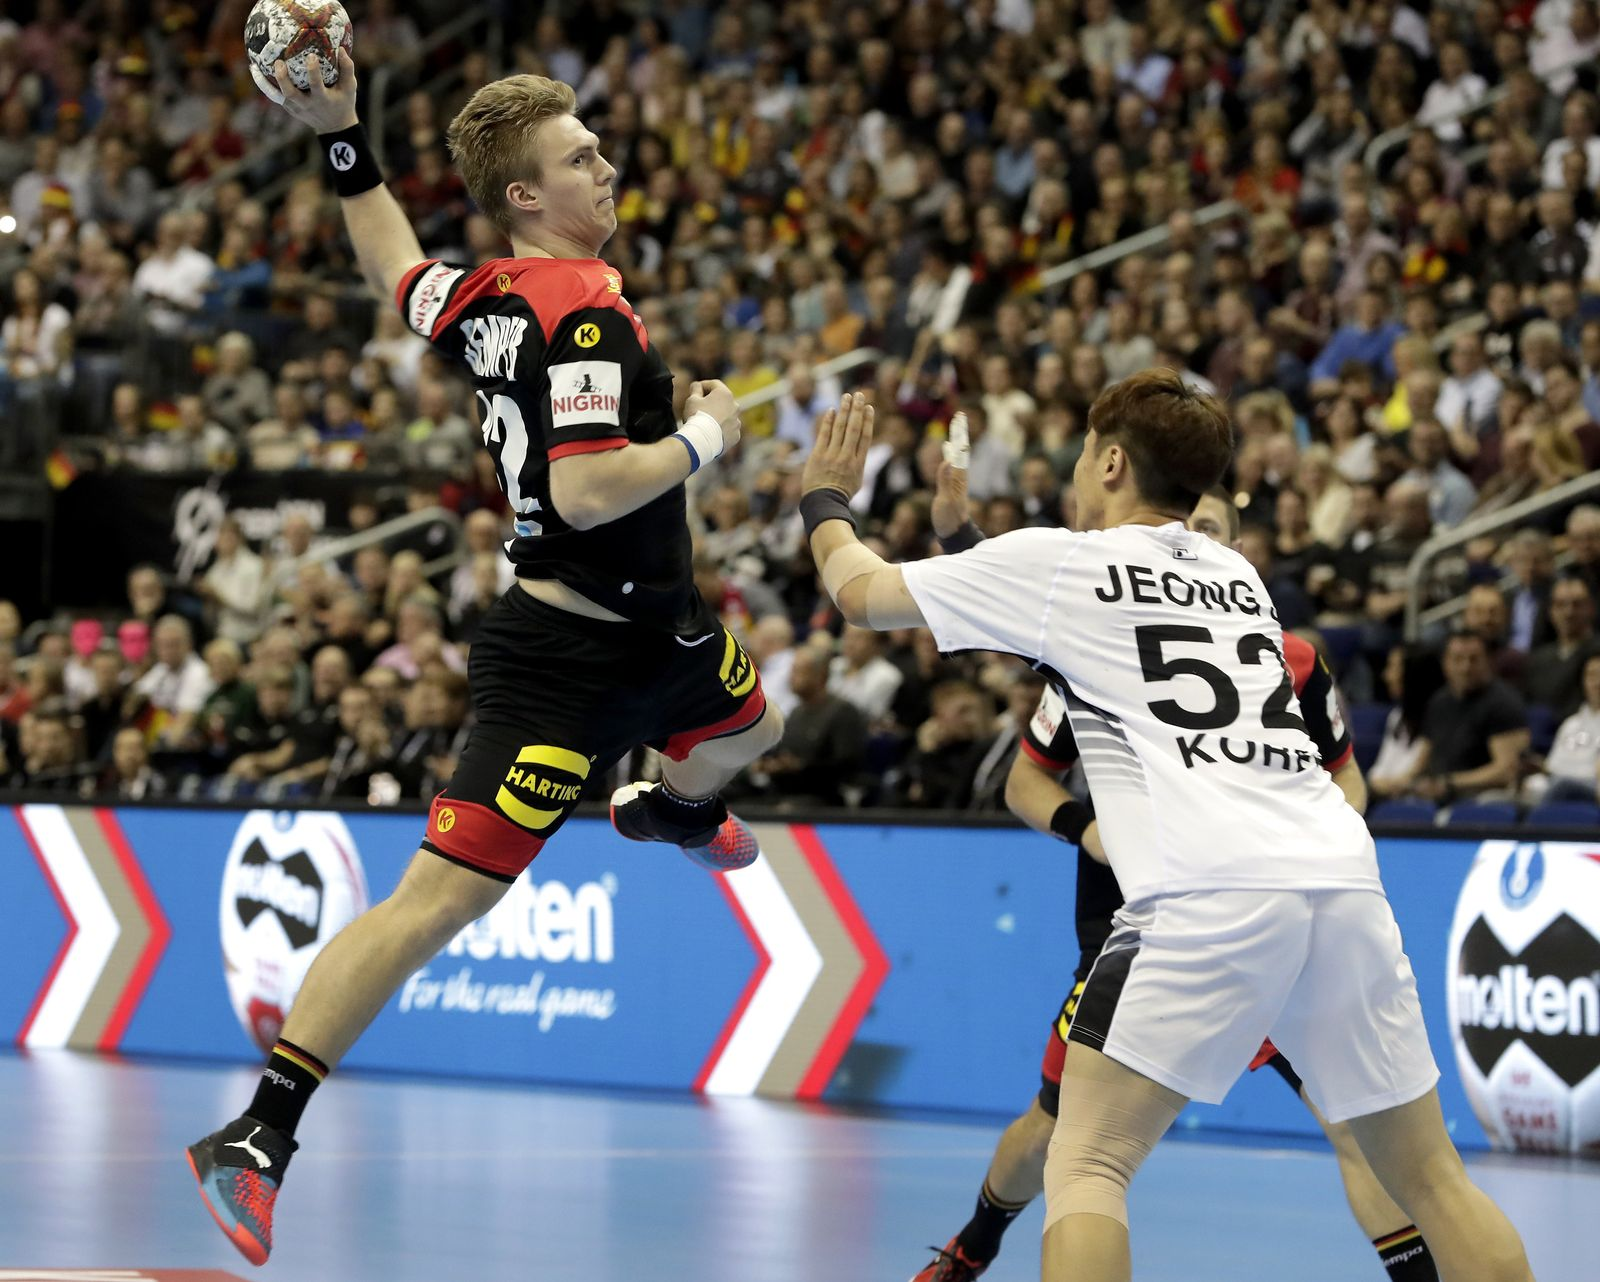 Germany Handball World Championship